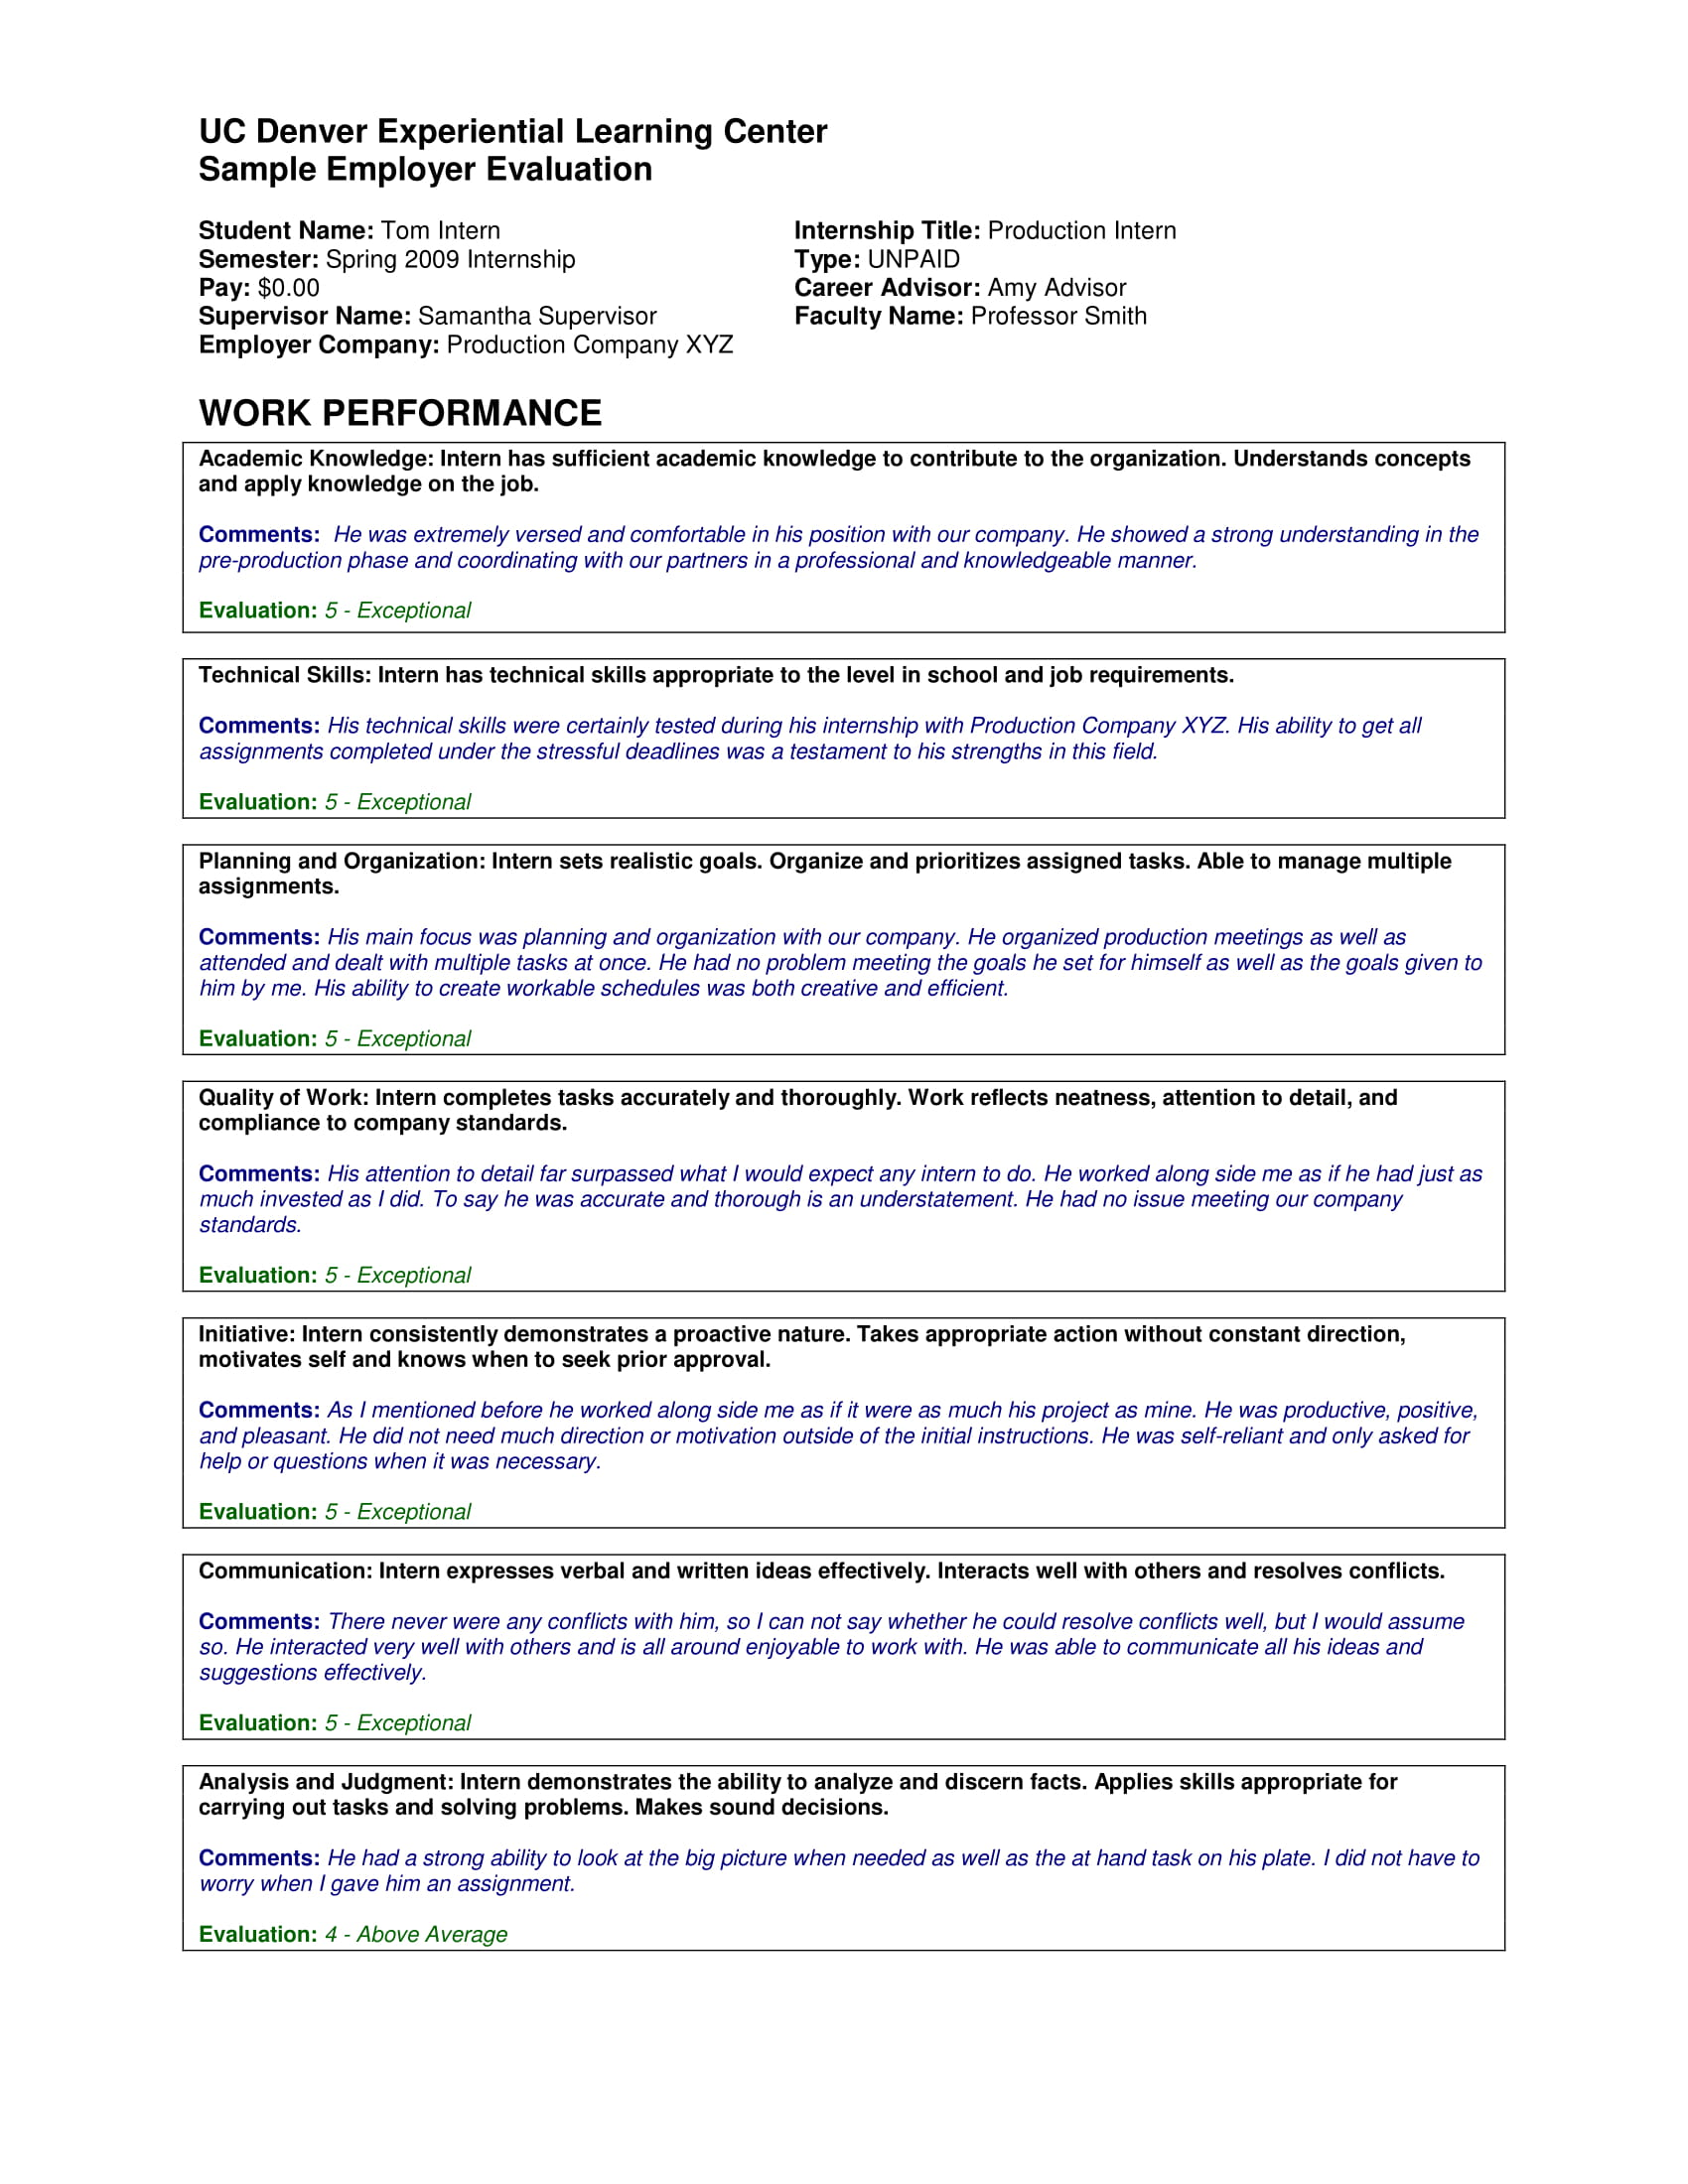 Performance Summary Examples in PDF  Examples